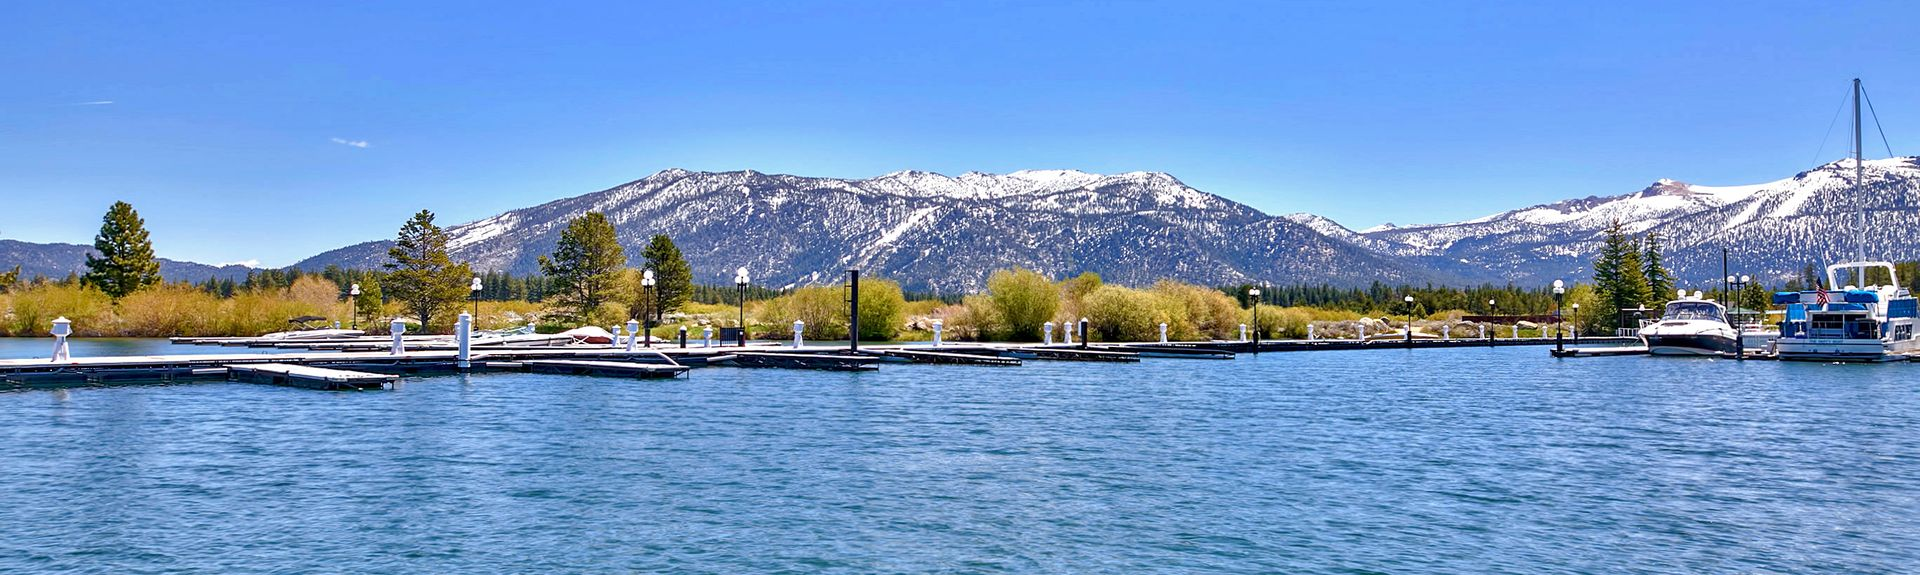 Tahoe Island, South Lake Tahoe, Californien, USA